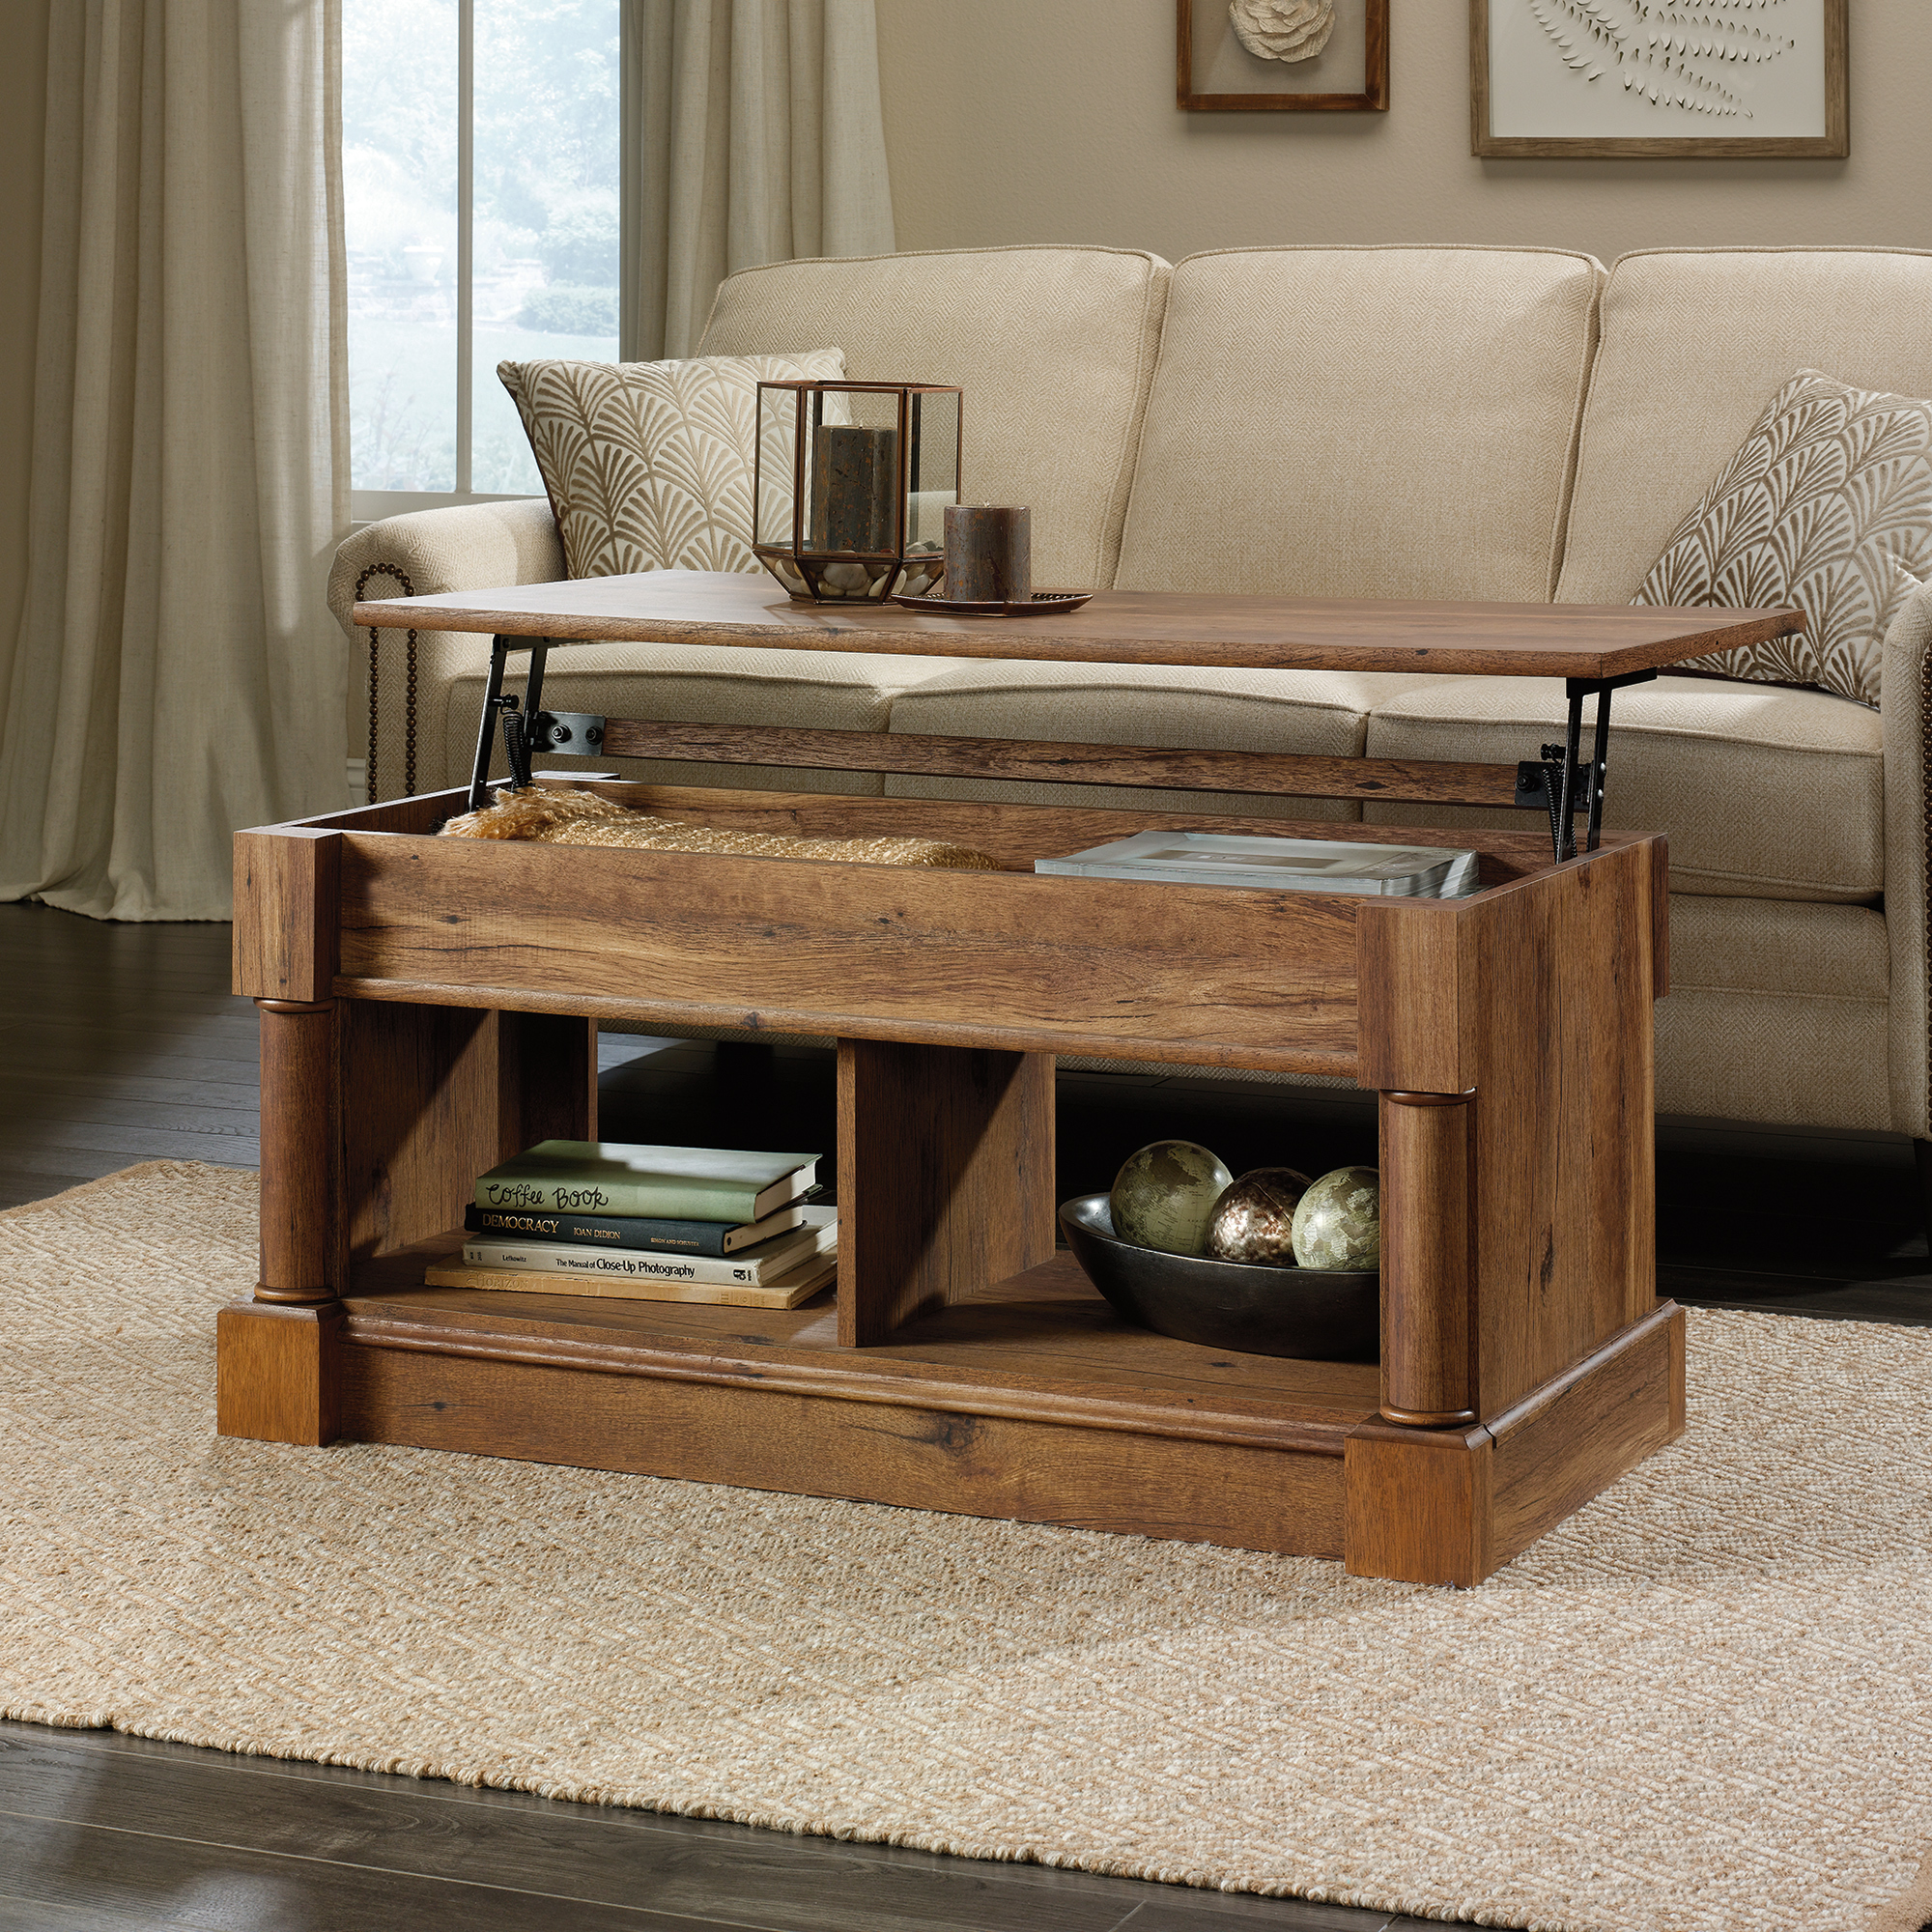 Terrific Lift Top Coffee Table Melbourne Andrewgaddart Wooden Chair Designs For Living Room Andrewgaddartcom